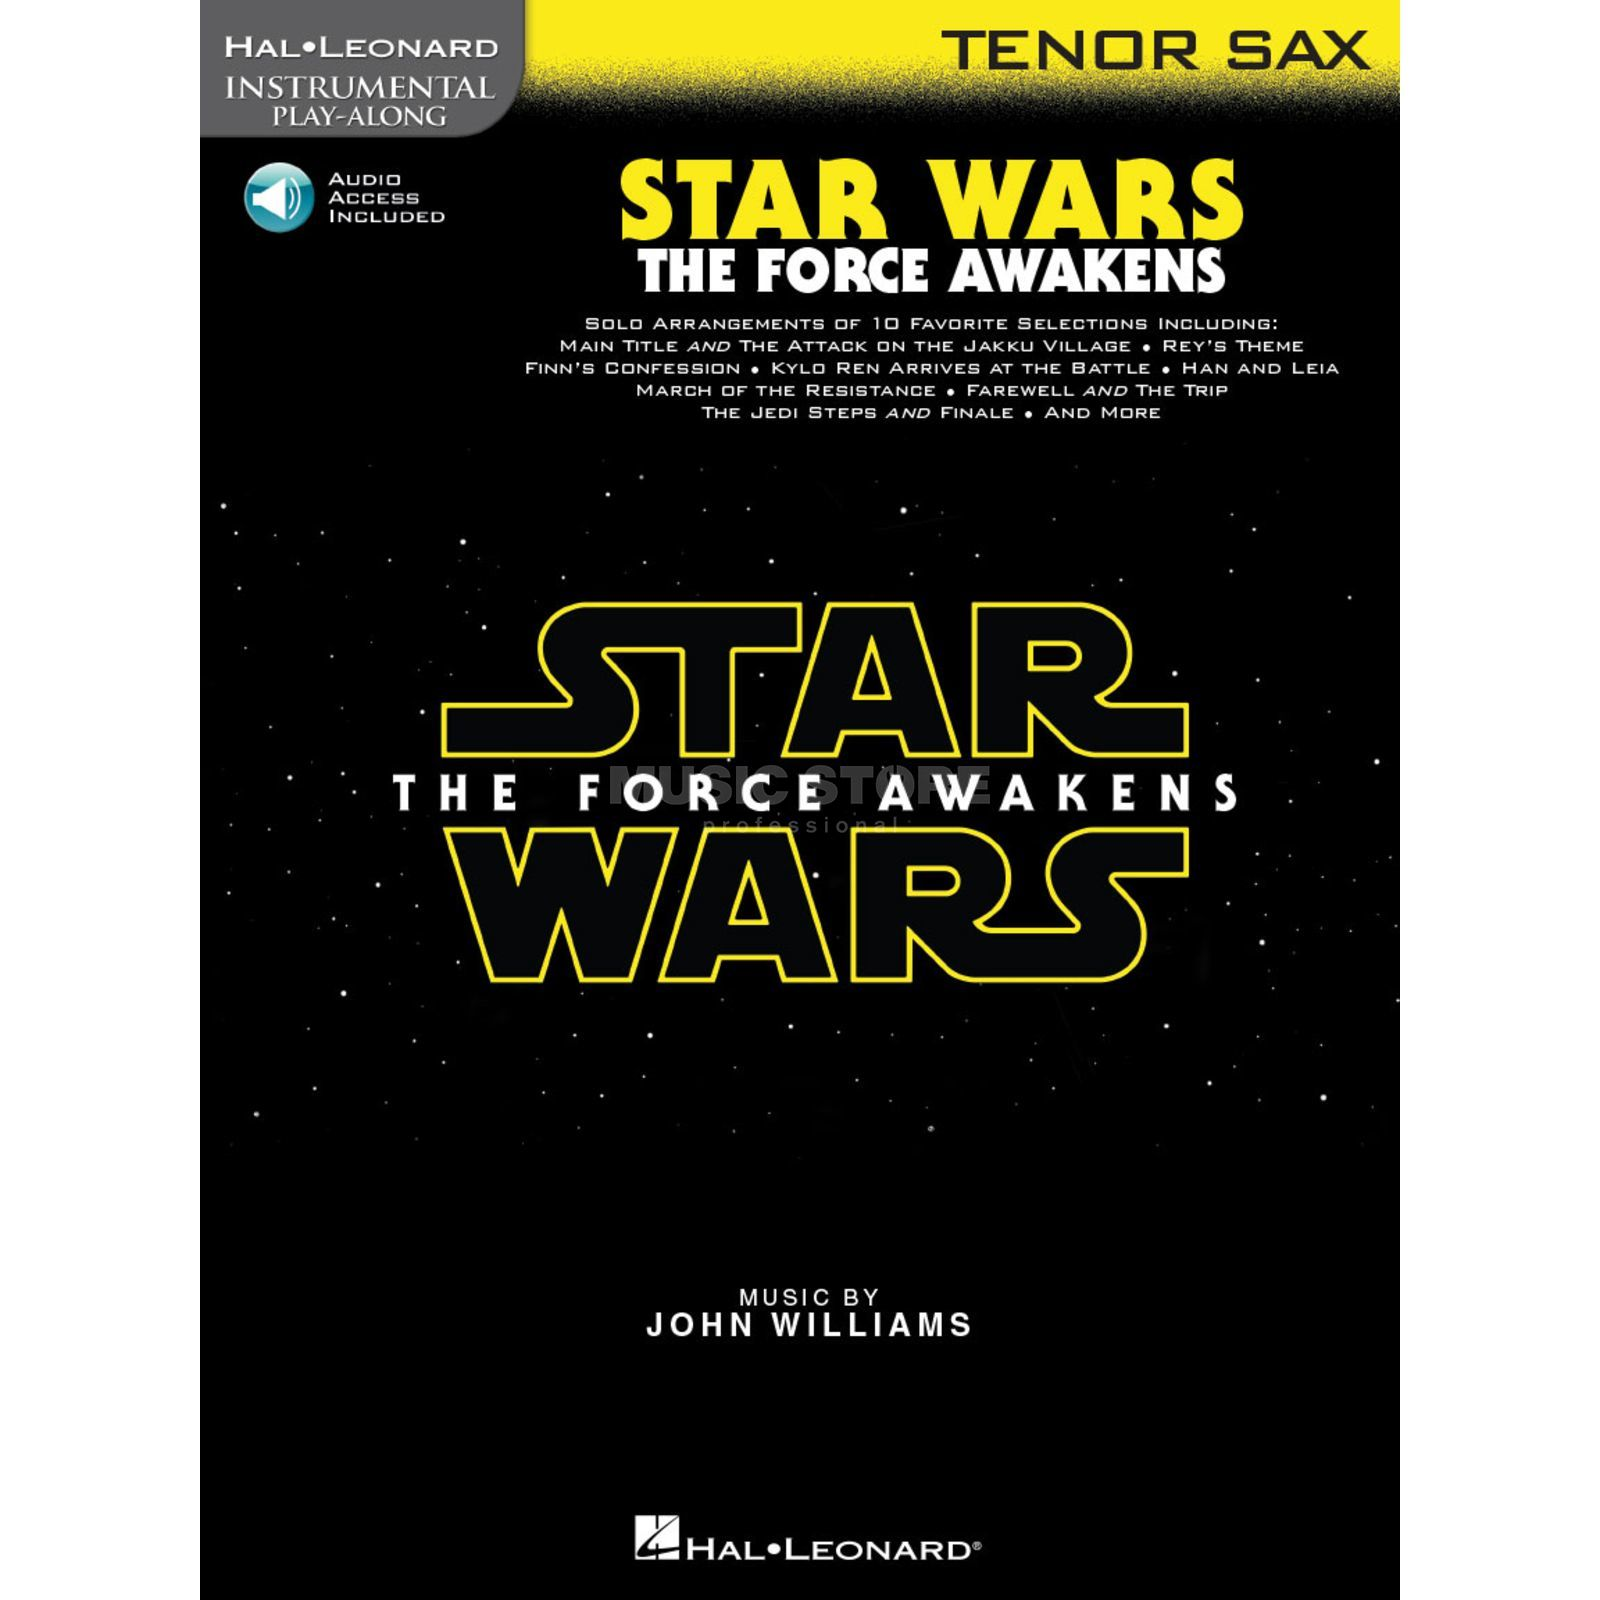 Hal Leonard Instrumental Play-Along: Star Wars - The Force Awakens - Tenor Saxophone Produktbild